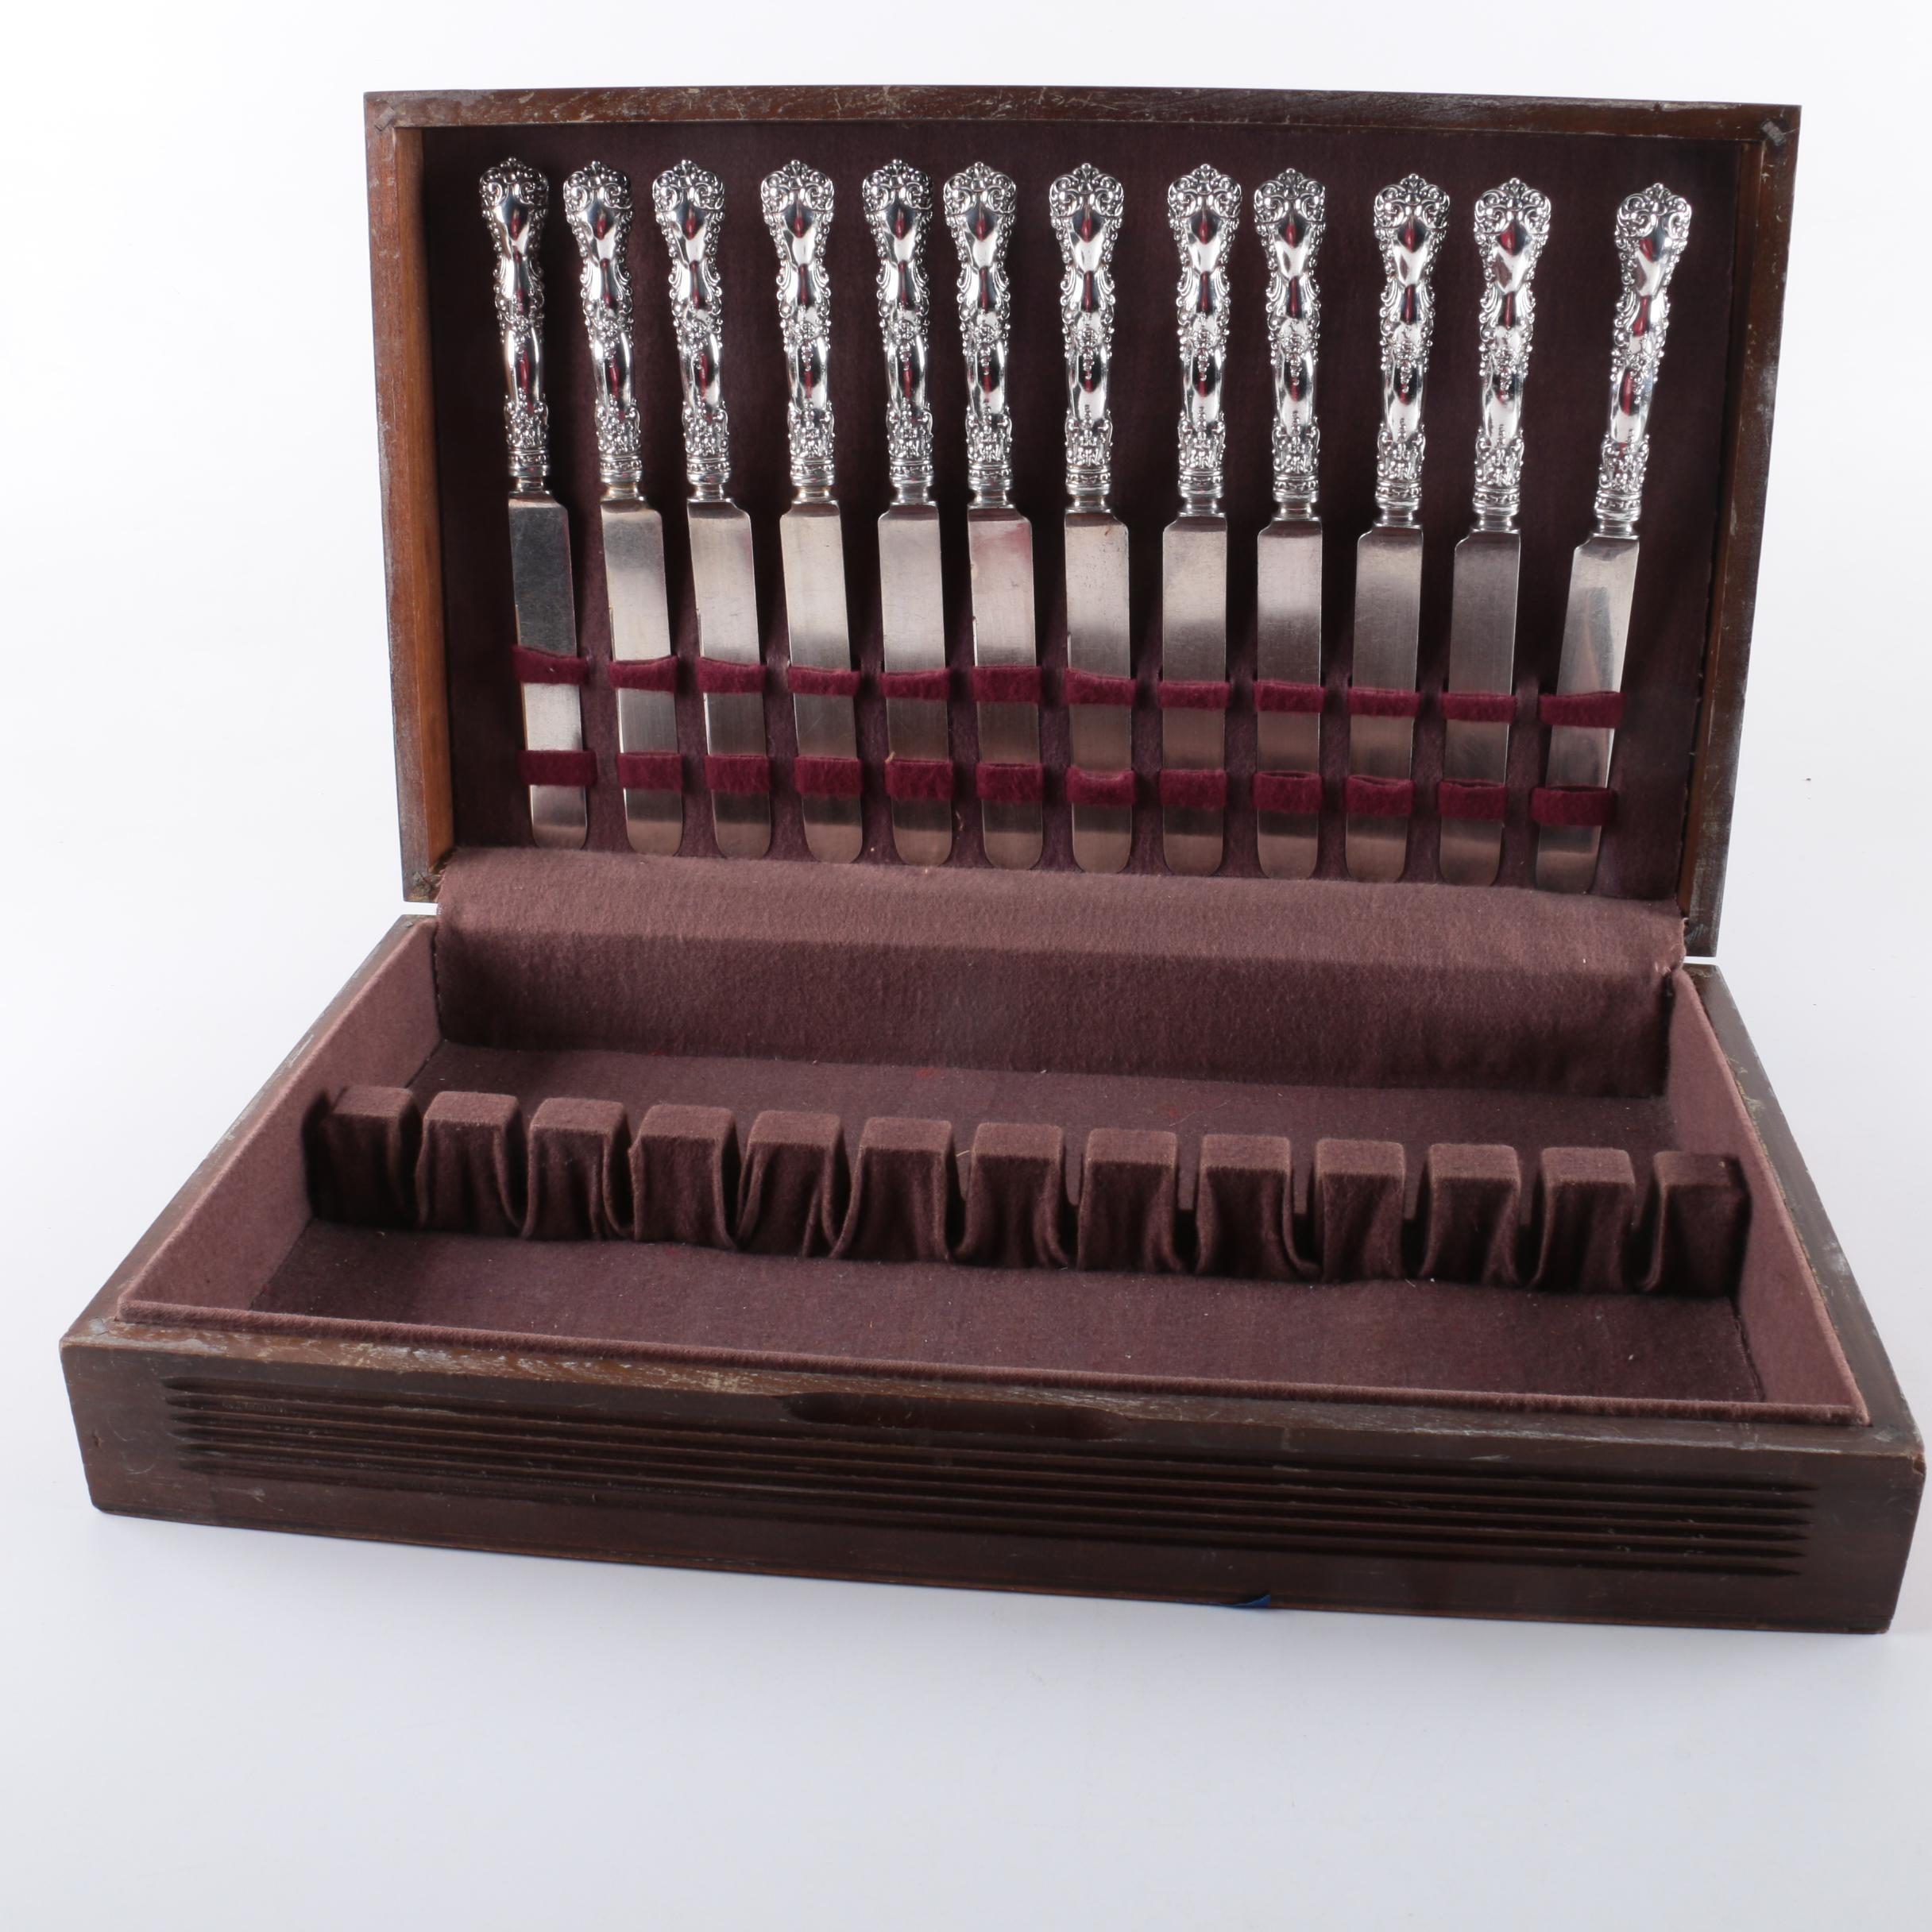 Sterling Handled Dinner Knives with Wooden Flatware Storage Chest